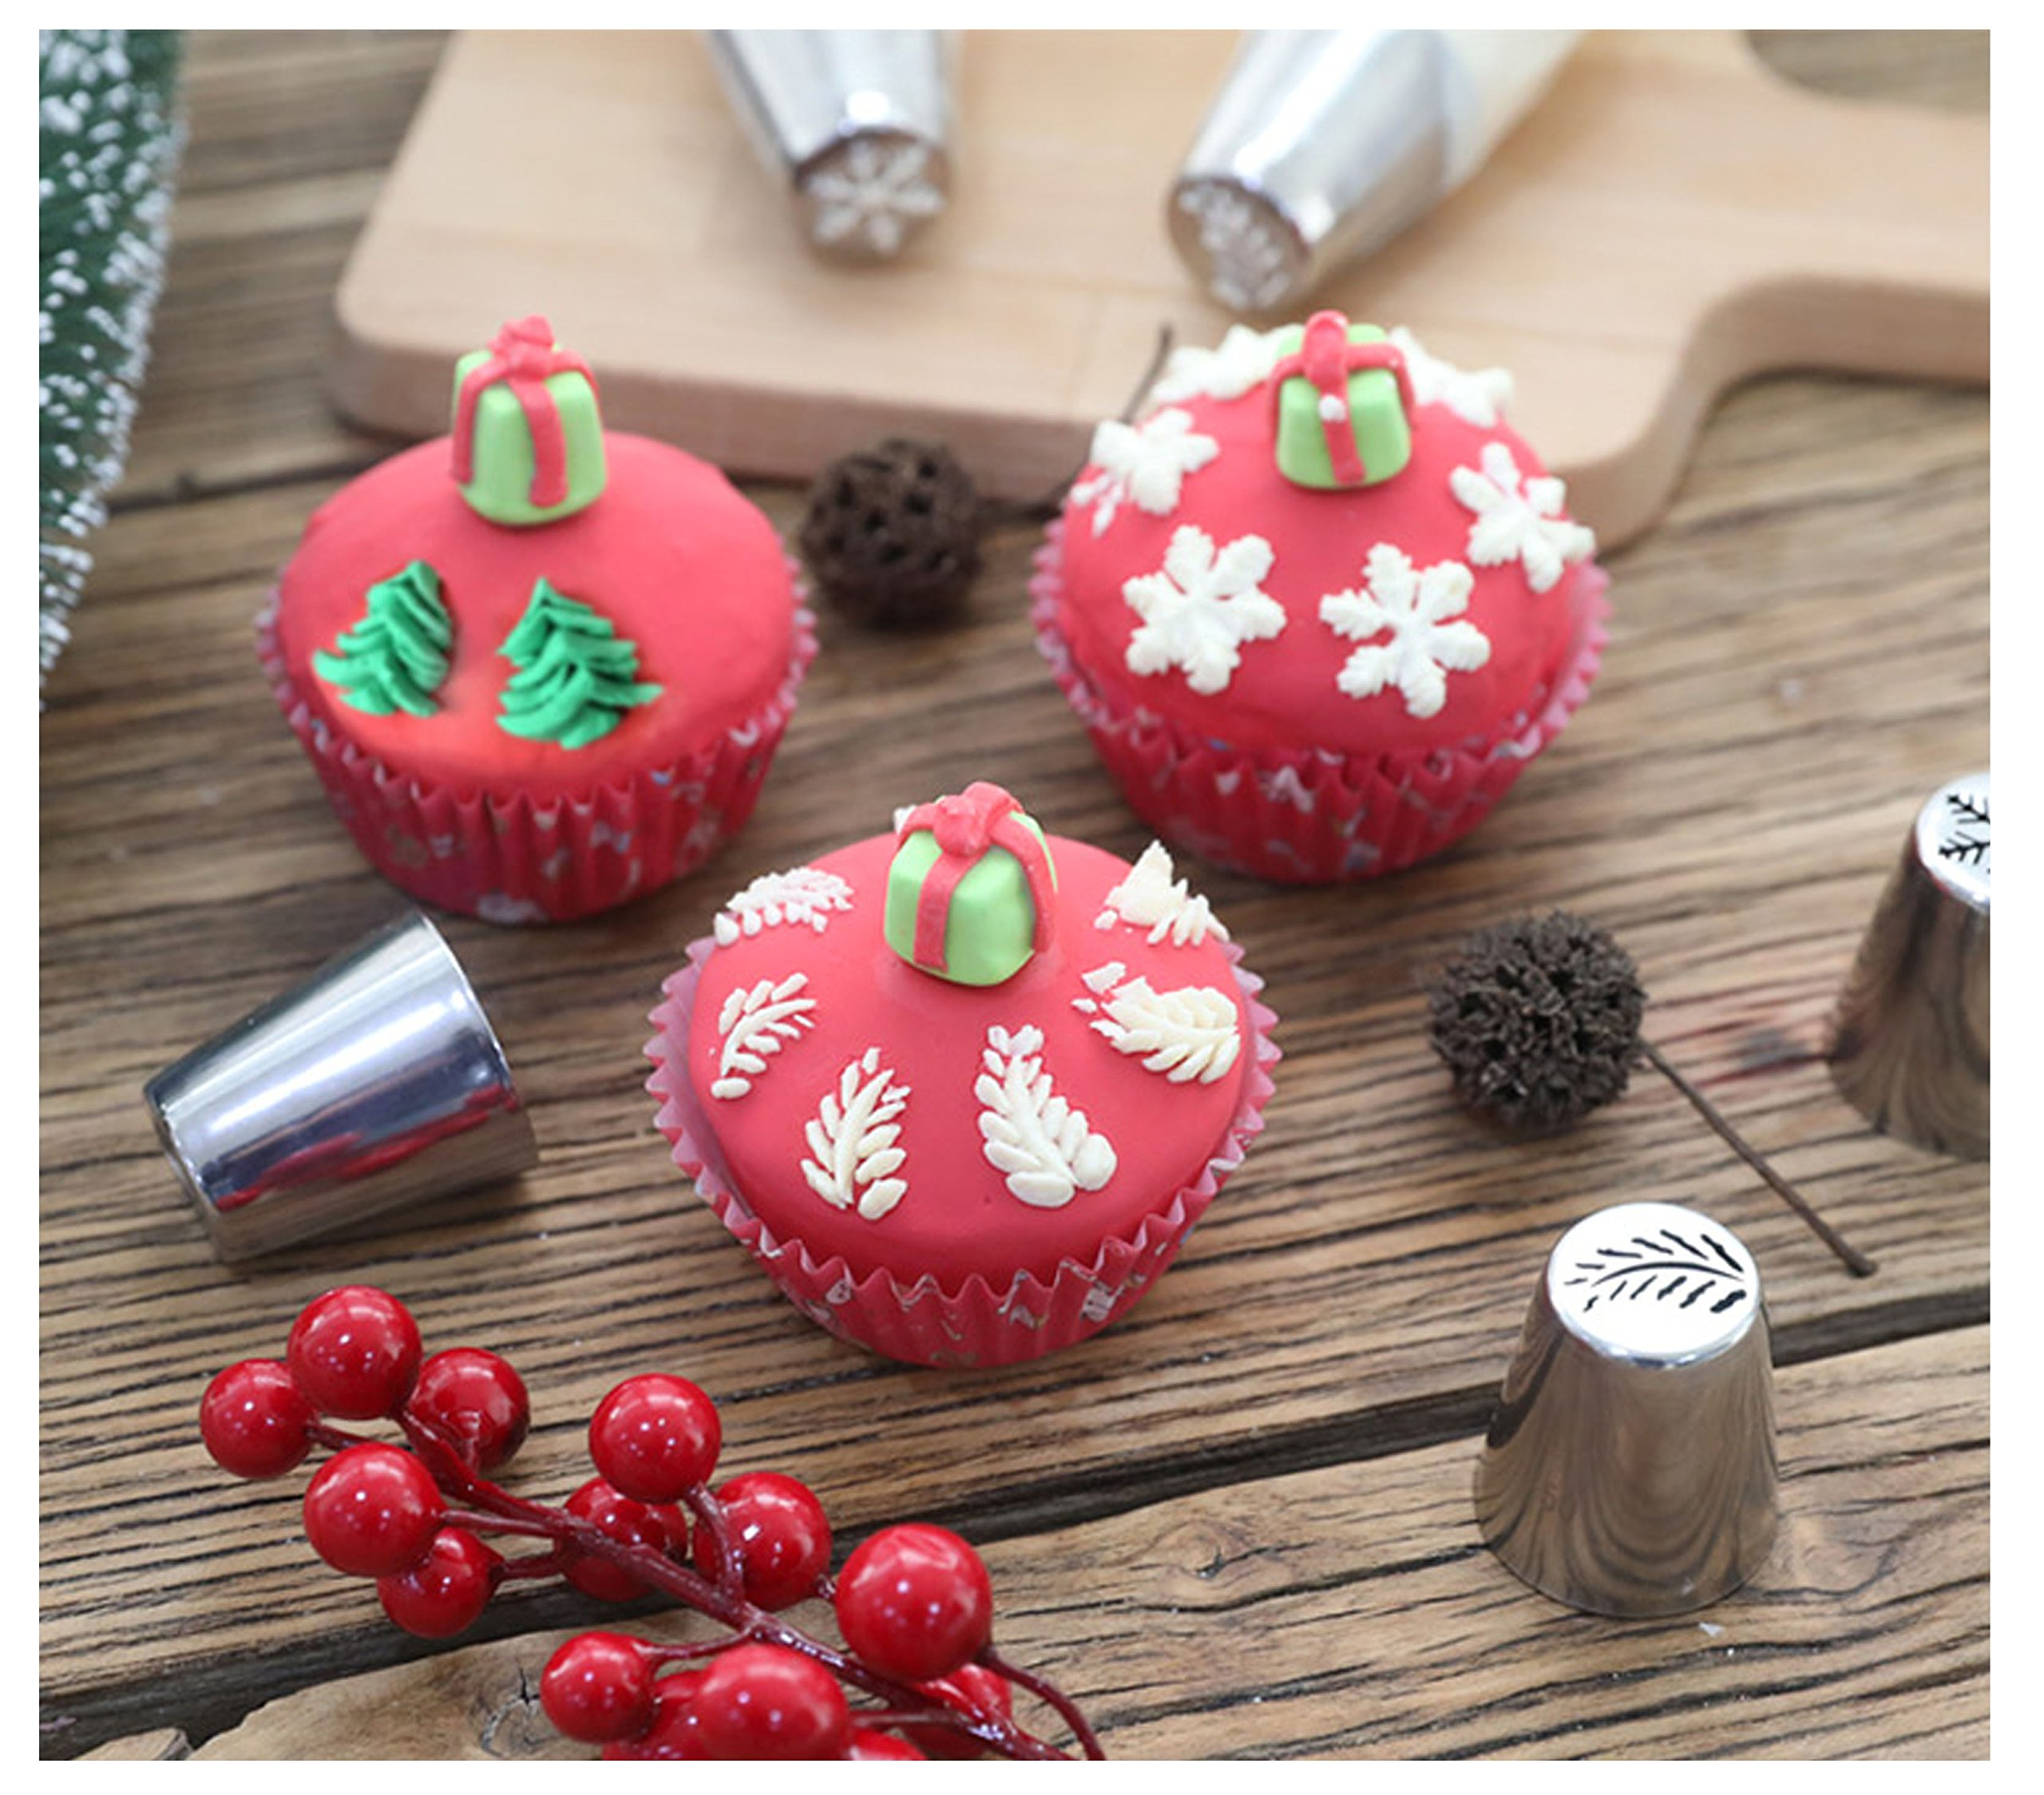 JJMG NEW Russian Icing Piping Tips Christmas Design For Cakes Cupcakes Cookies - Decoration Pastry Baking Tools by JJMG (Image #3)